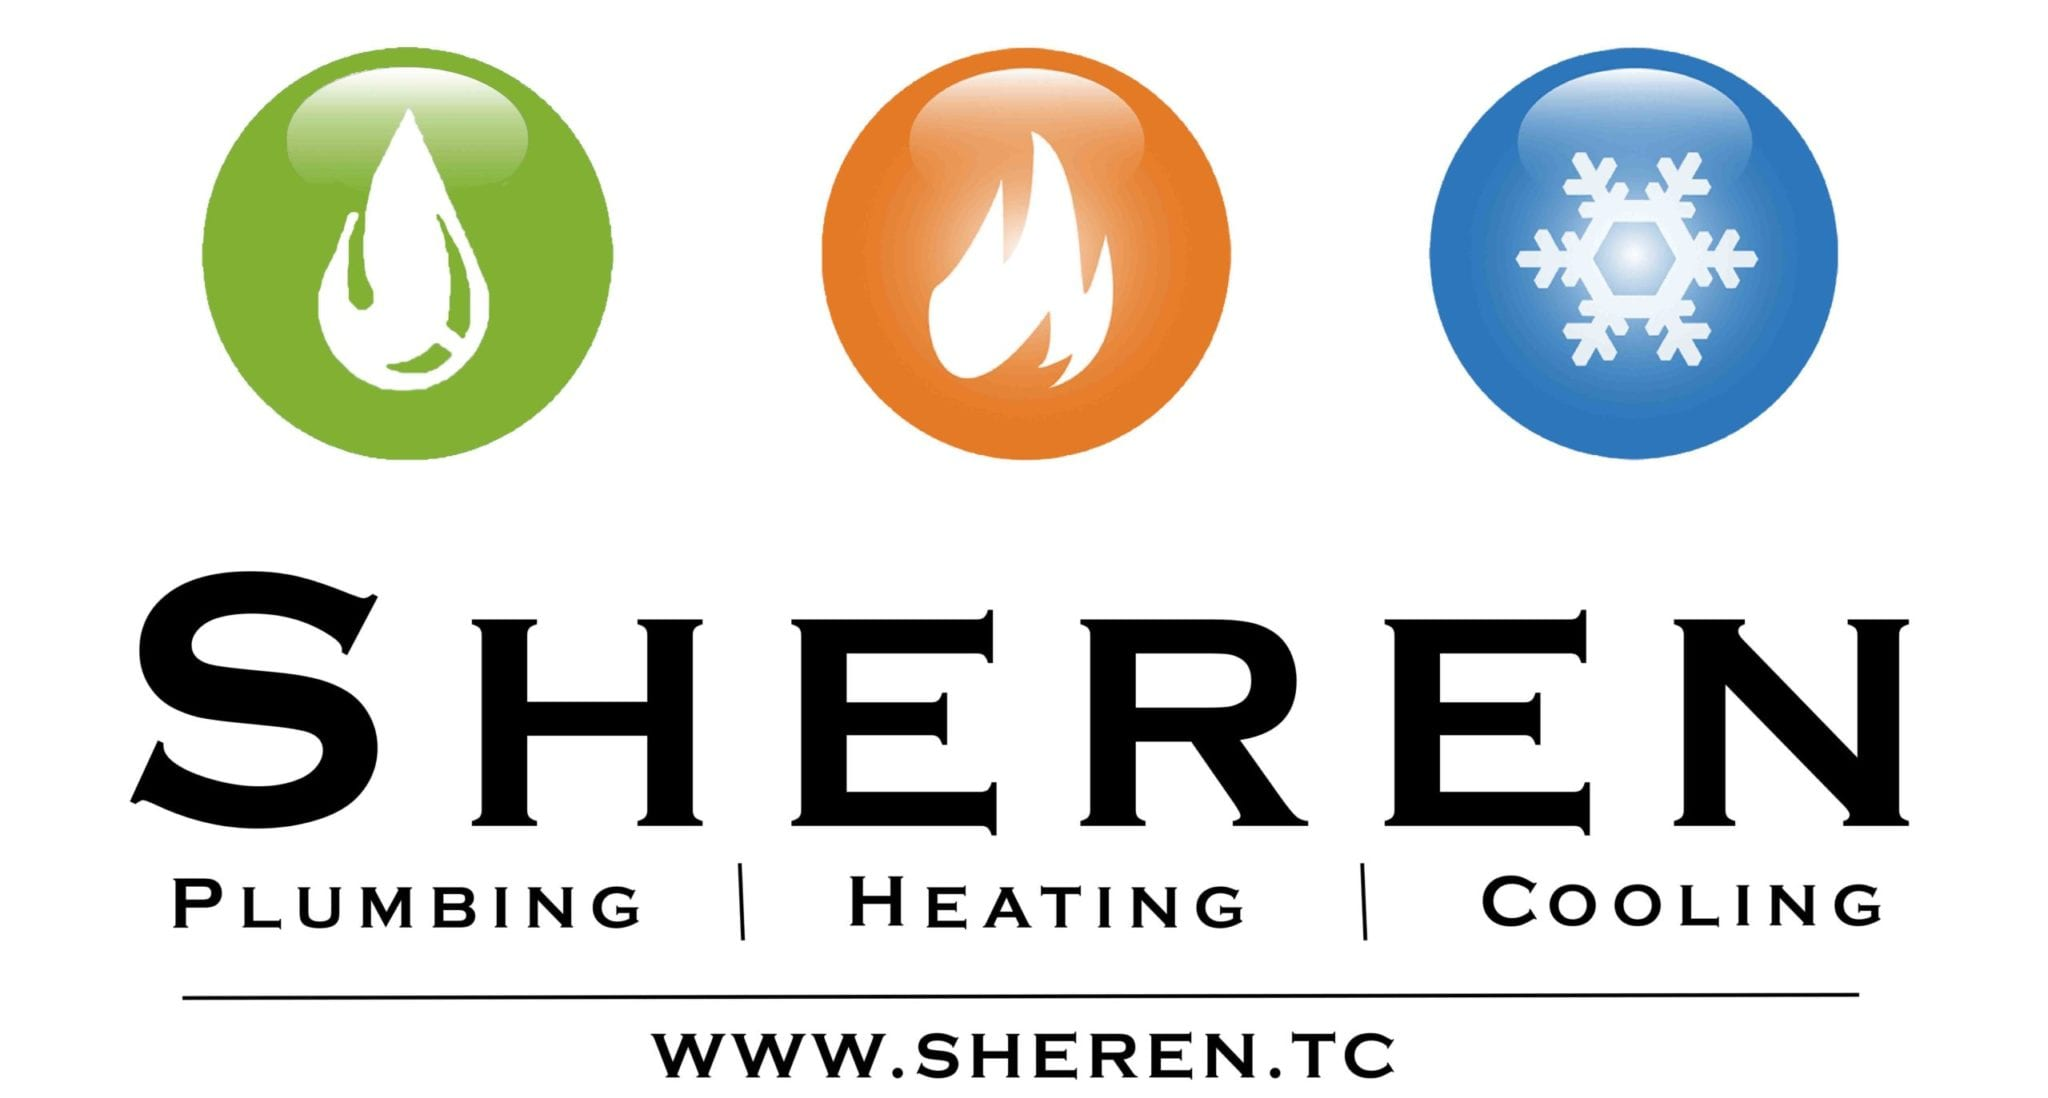 Sheren Plumbing-Heating-Cooling-Traverse City-Petoskey-Northern Michigan